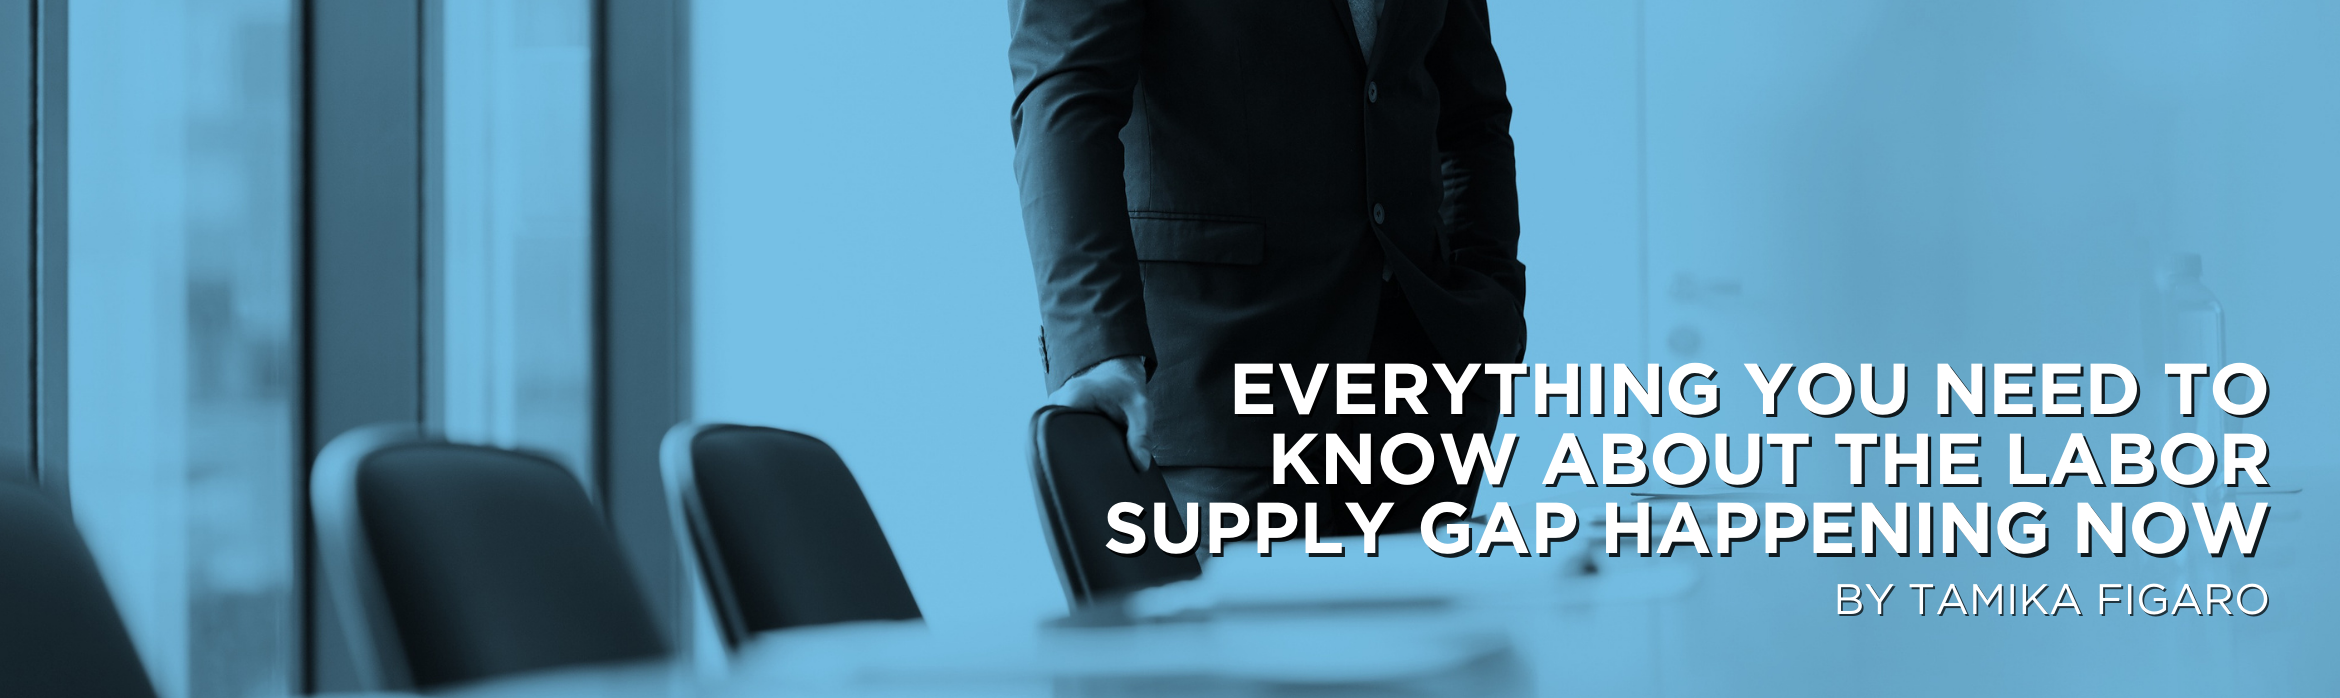 Everything you need to know about the labor supply gap happening now